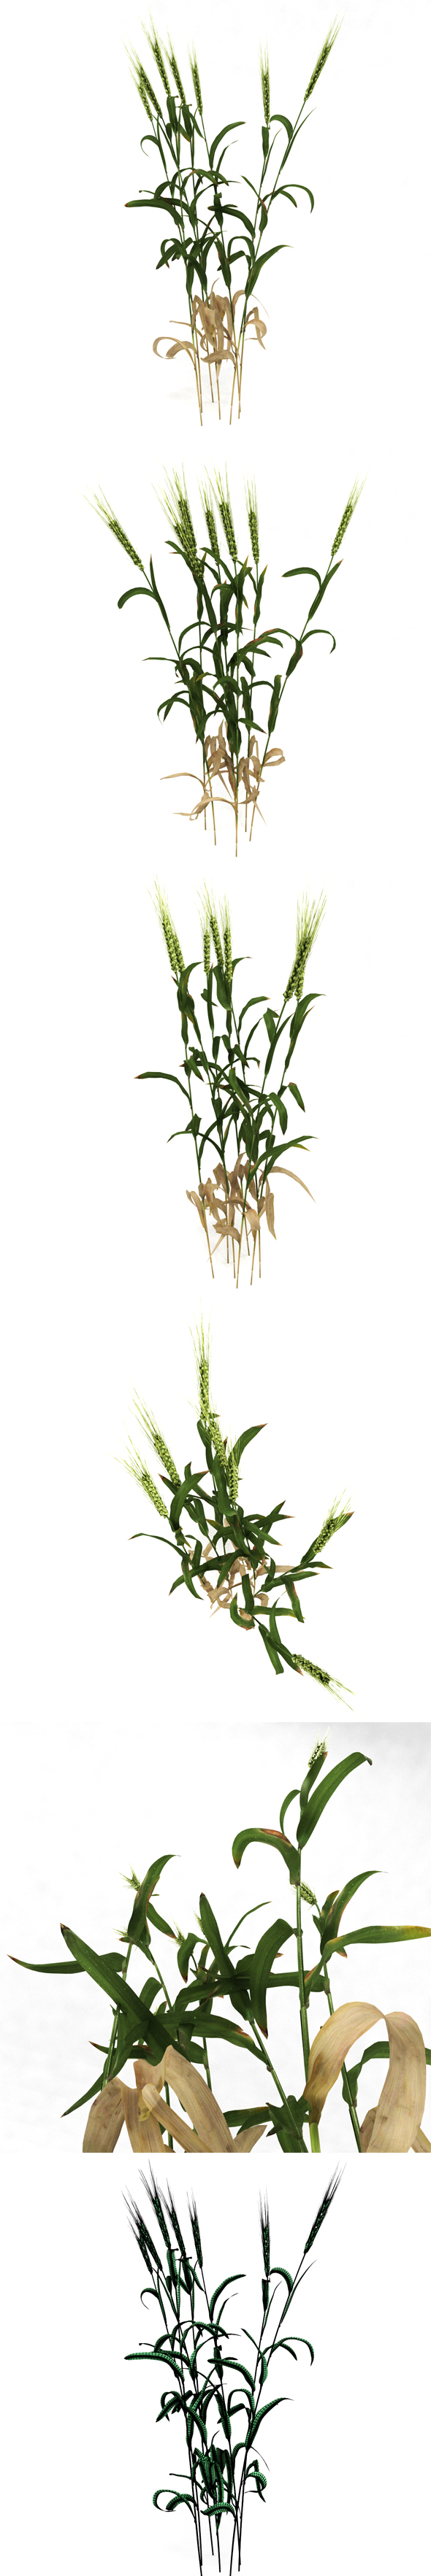 Wheat plant - 3DOcean Item for Sale